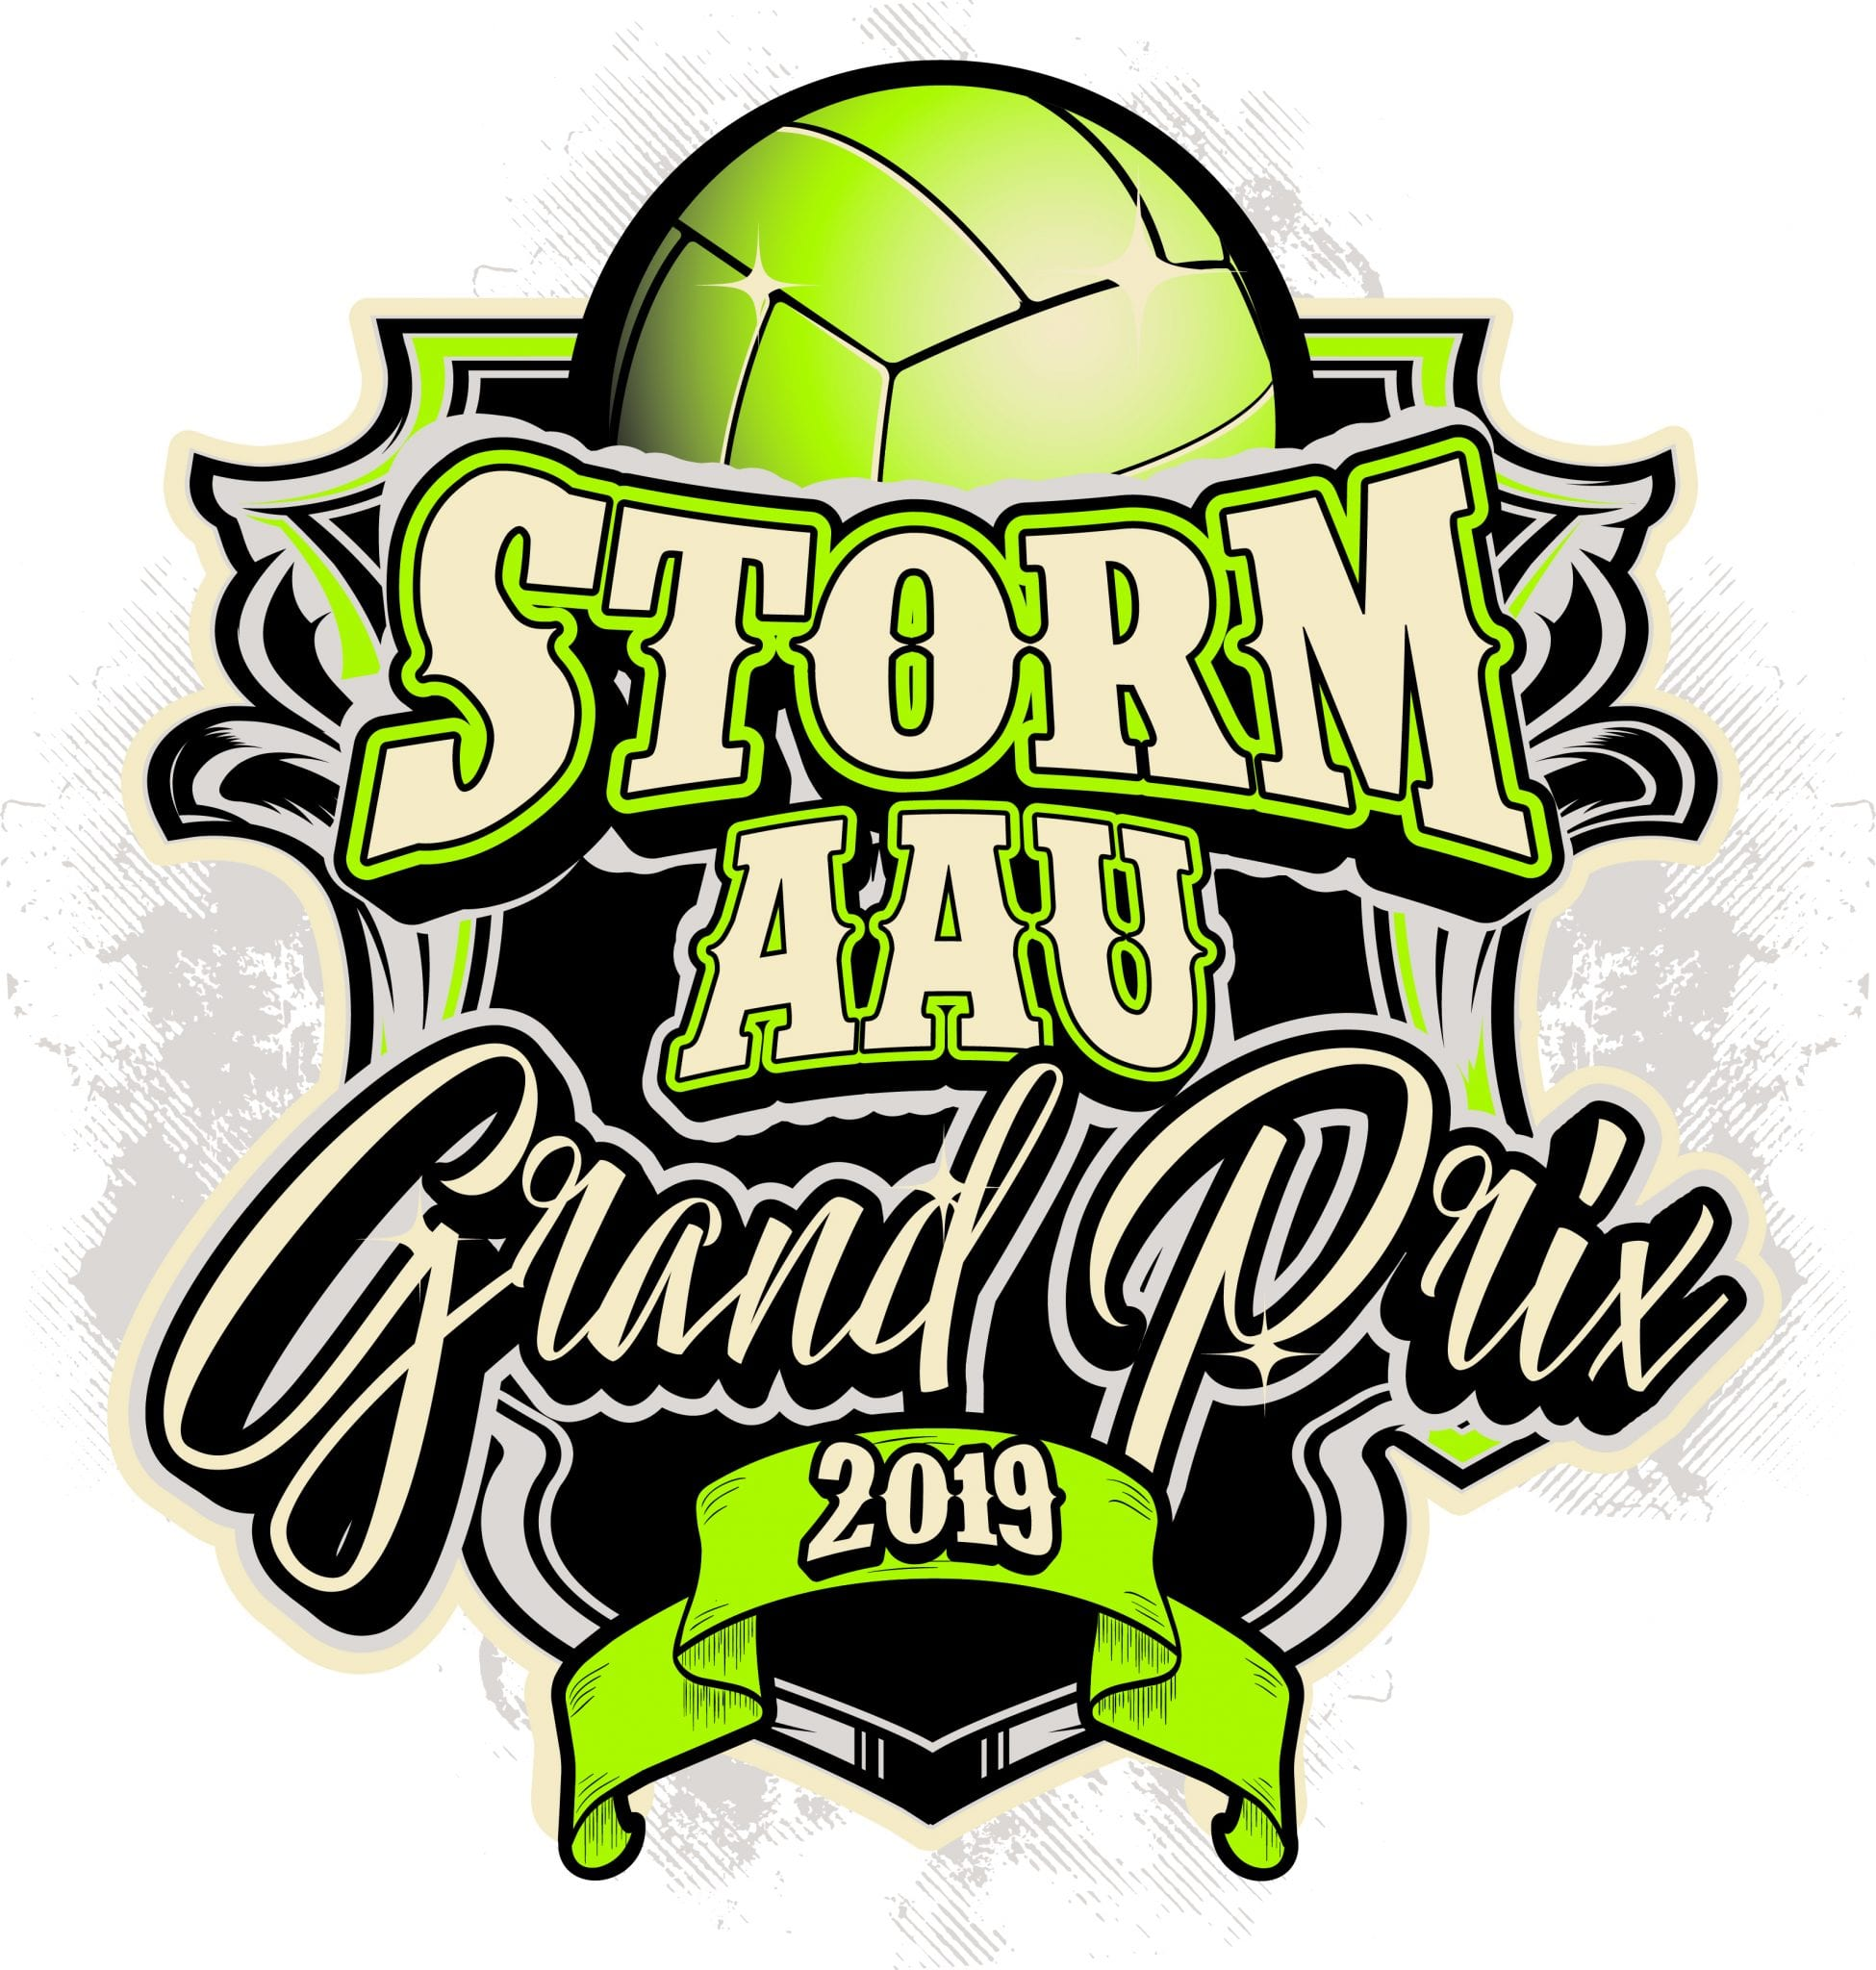 Volleyball Storm Aau Grand Prix 2019 T Shirt Vector Logo Design